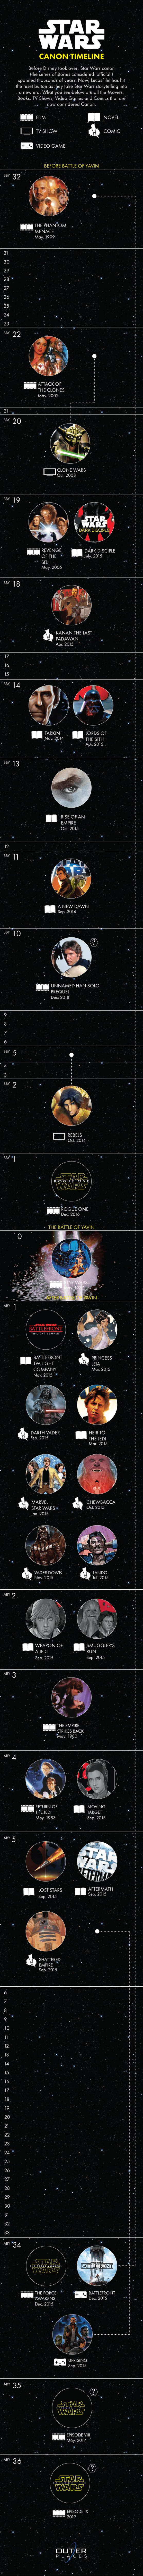 star-wars-timeline-infographic-for-the-new-canon See more Sci Fi at http://www.warpedspacescifi.com/